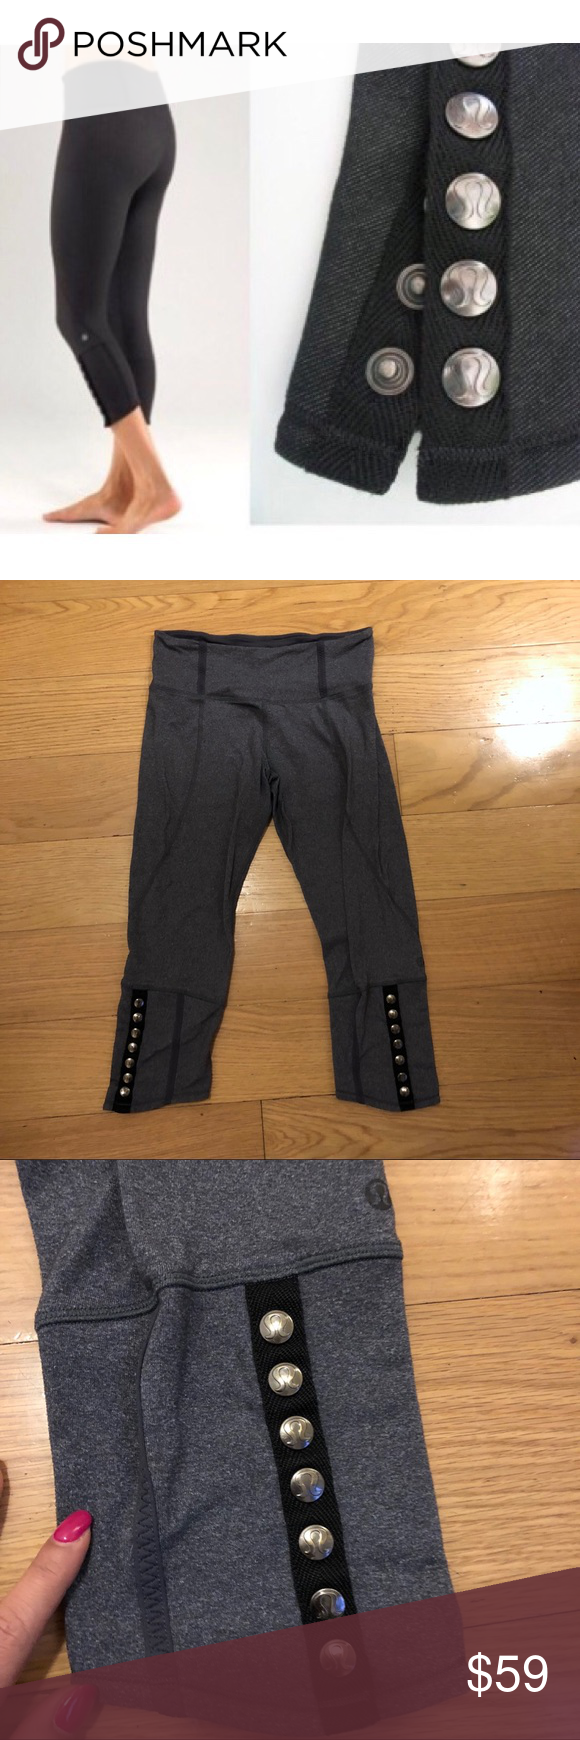 "ef2b27f1f4 Lululemon Snap Me Up Crop Lululemon Snap Me Up Crop in Heathered Coal. -Size  8. -High rise. -Inseam: 21"" -Excellent condition. NO Trades."